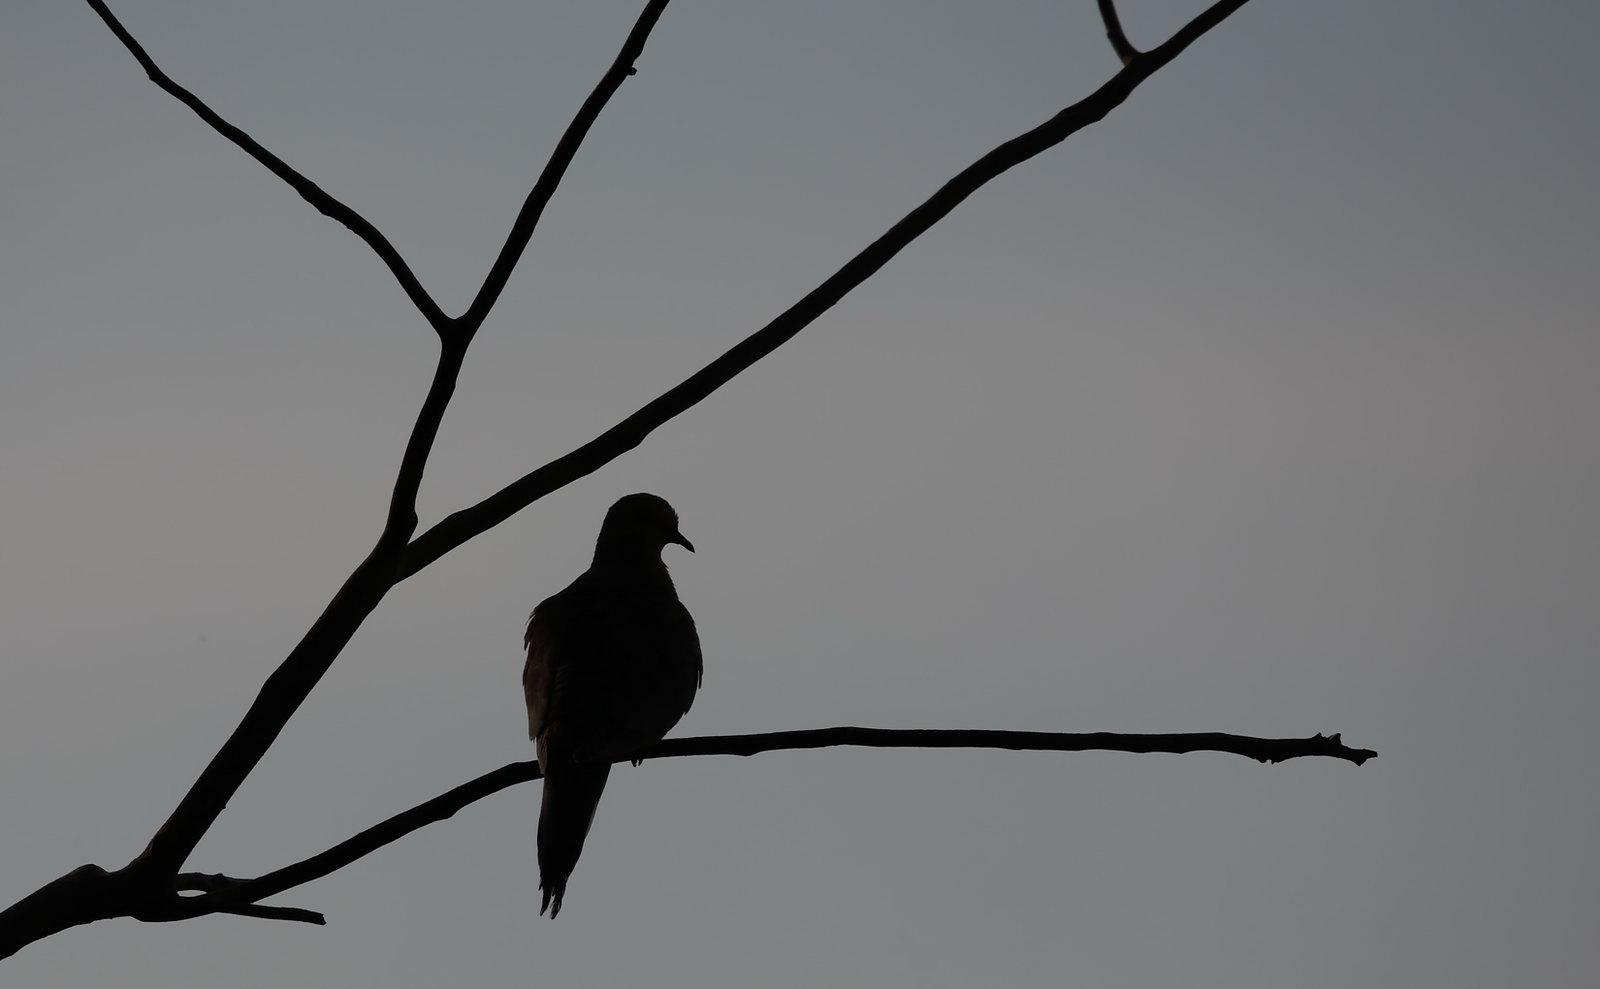 Mourning Dove silhouette